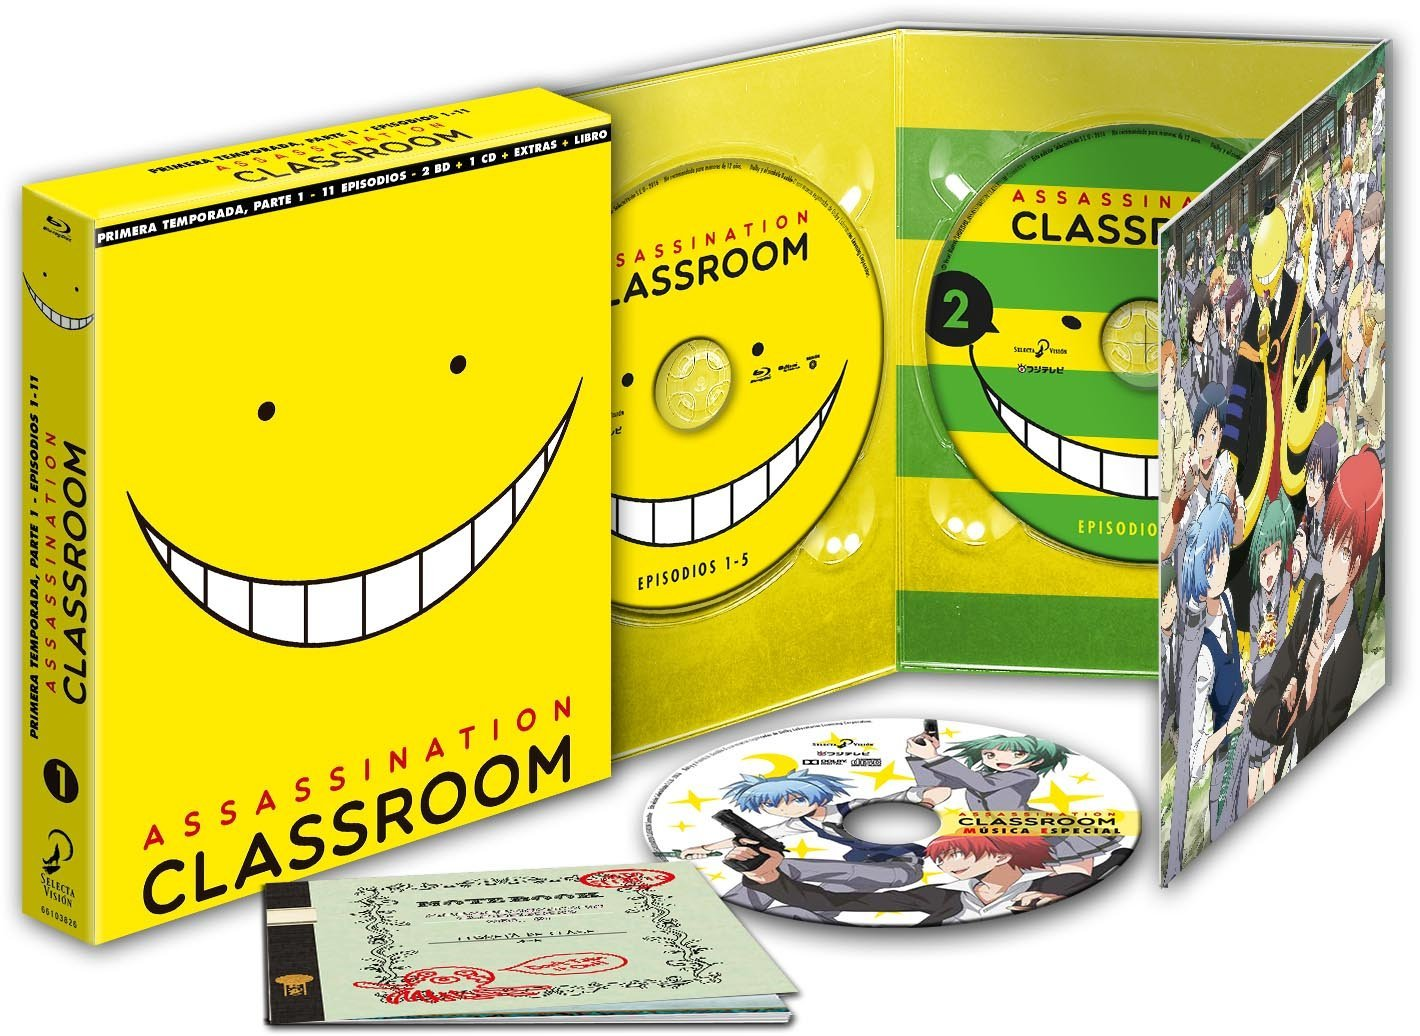 Assassination Classroom BD01